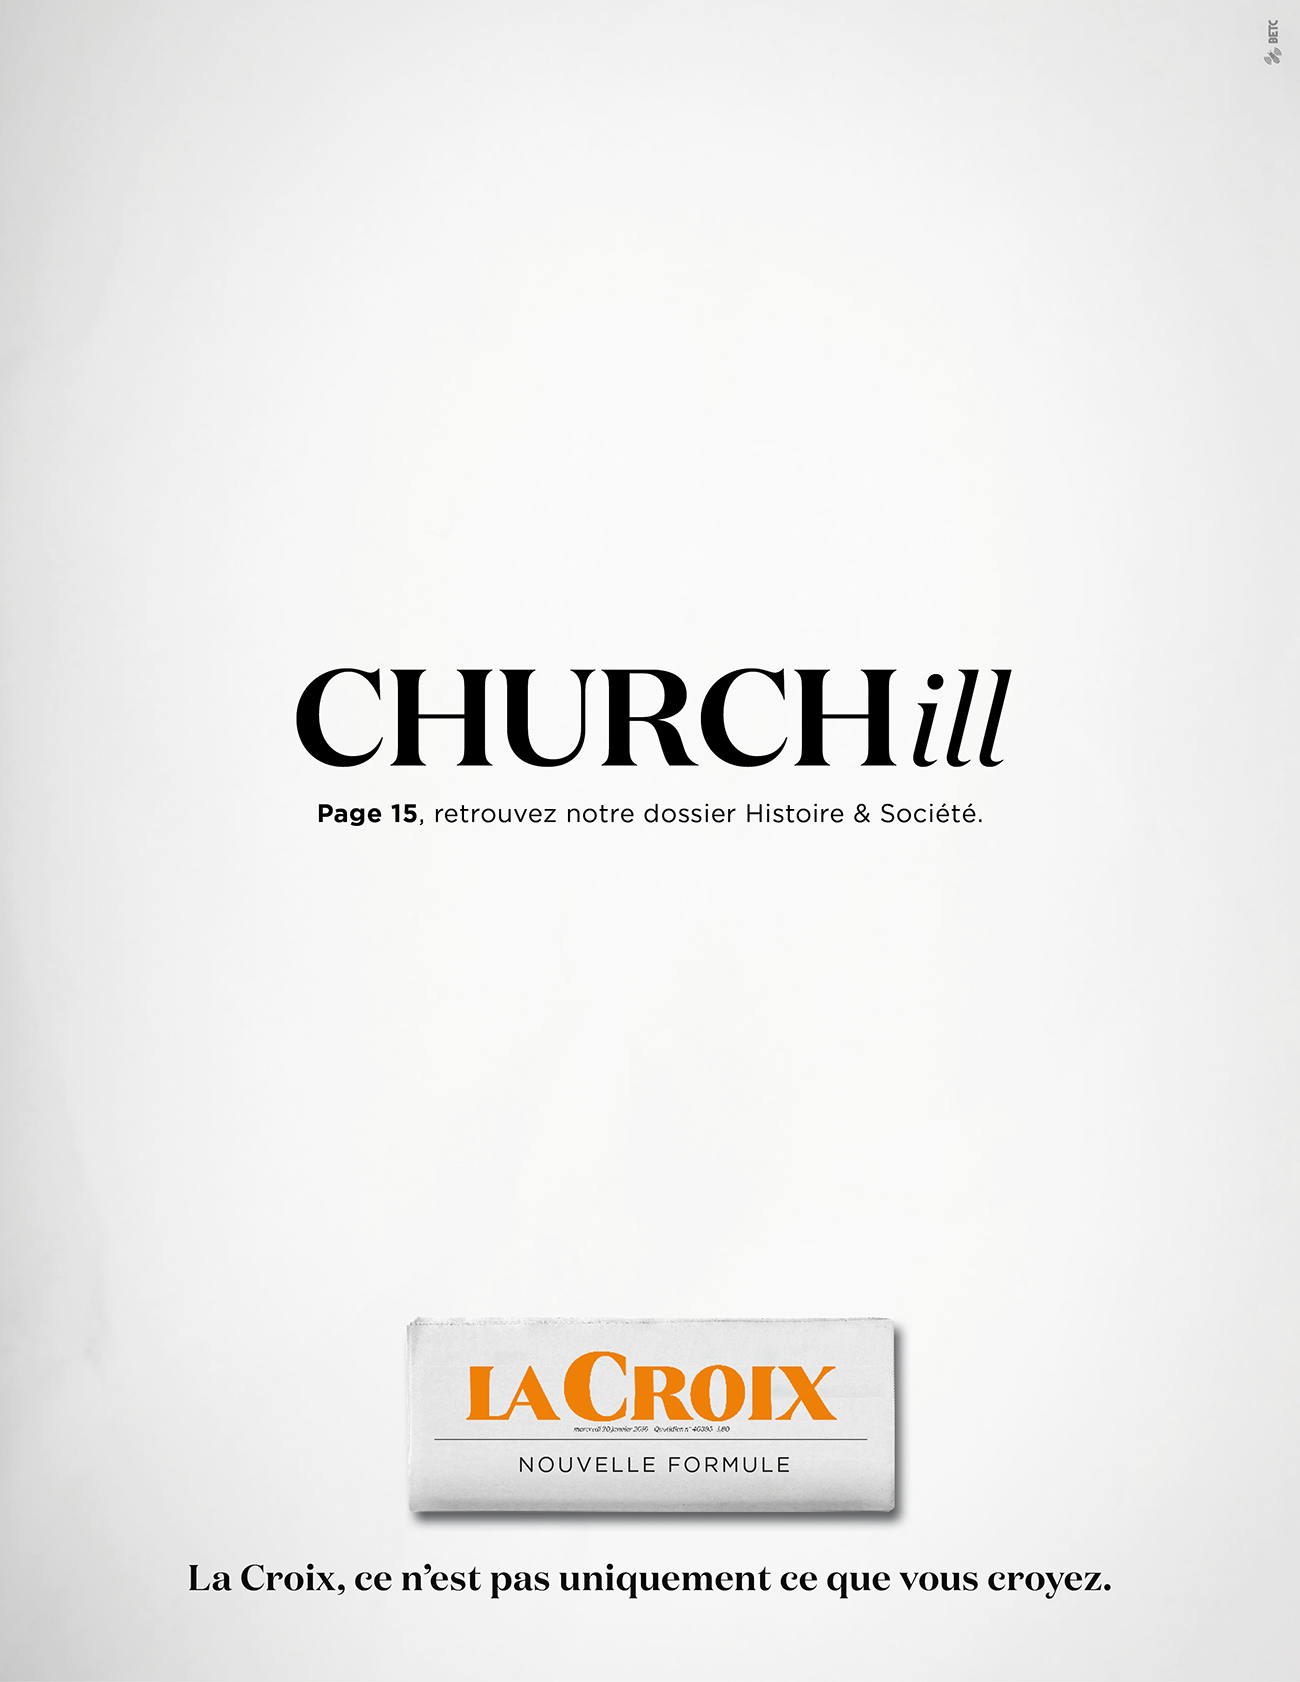 journal-la-croix-nouvelle-formule-2016-religion-football-economie-churchill-lionel-messie-agence-betc-1